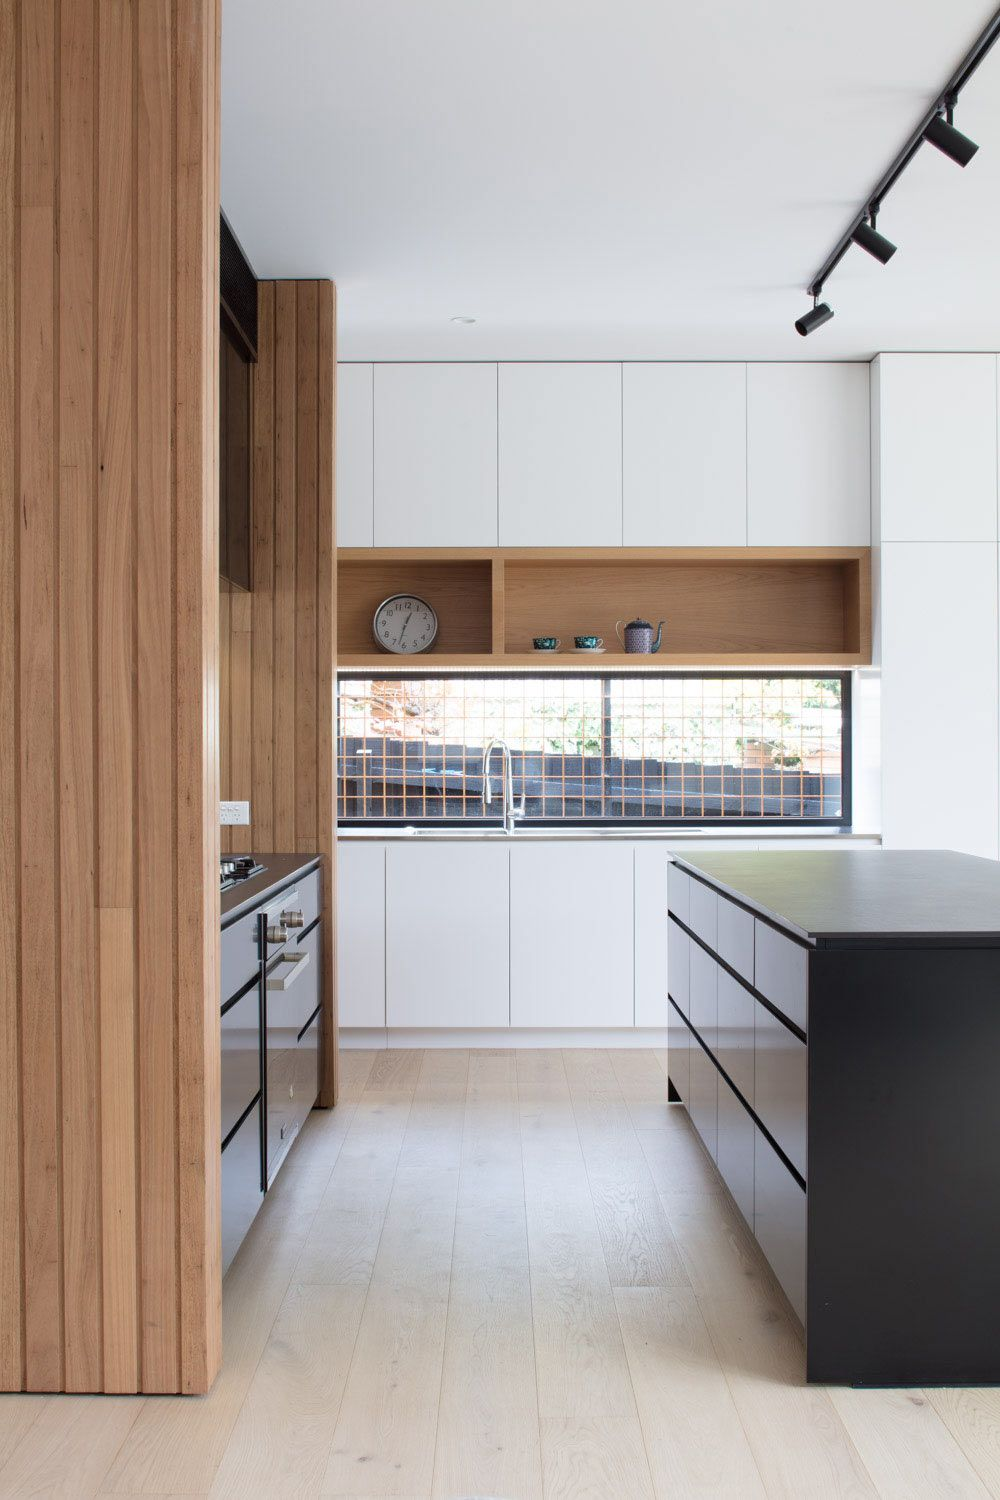 A Modern Modular Extension Added To A Weatherboard House In Melbourne Kitchen Remodel Small Kitchen Remodel Galley Kitchen Remodel